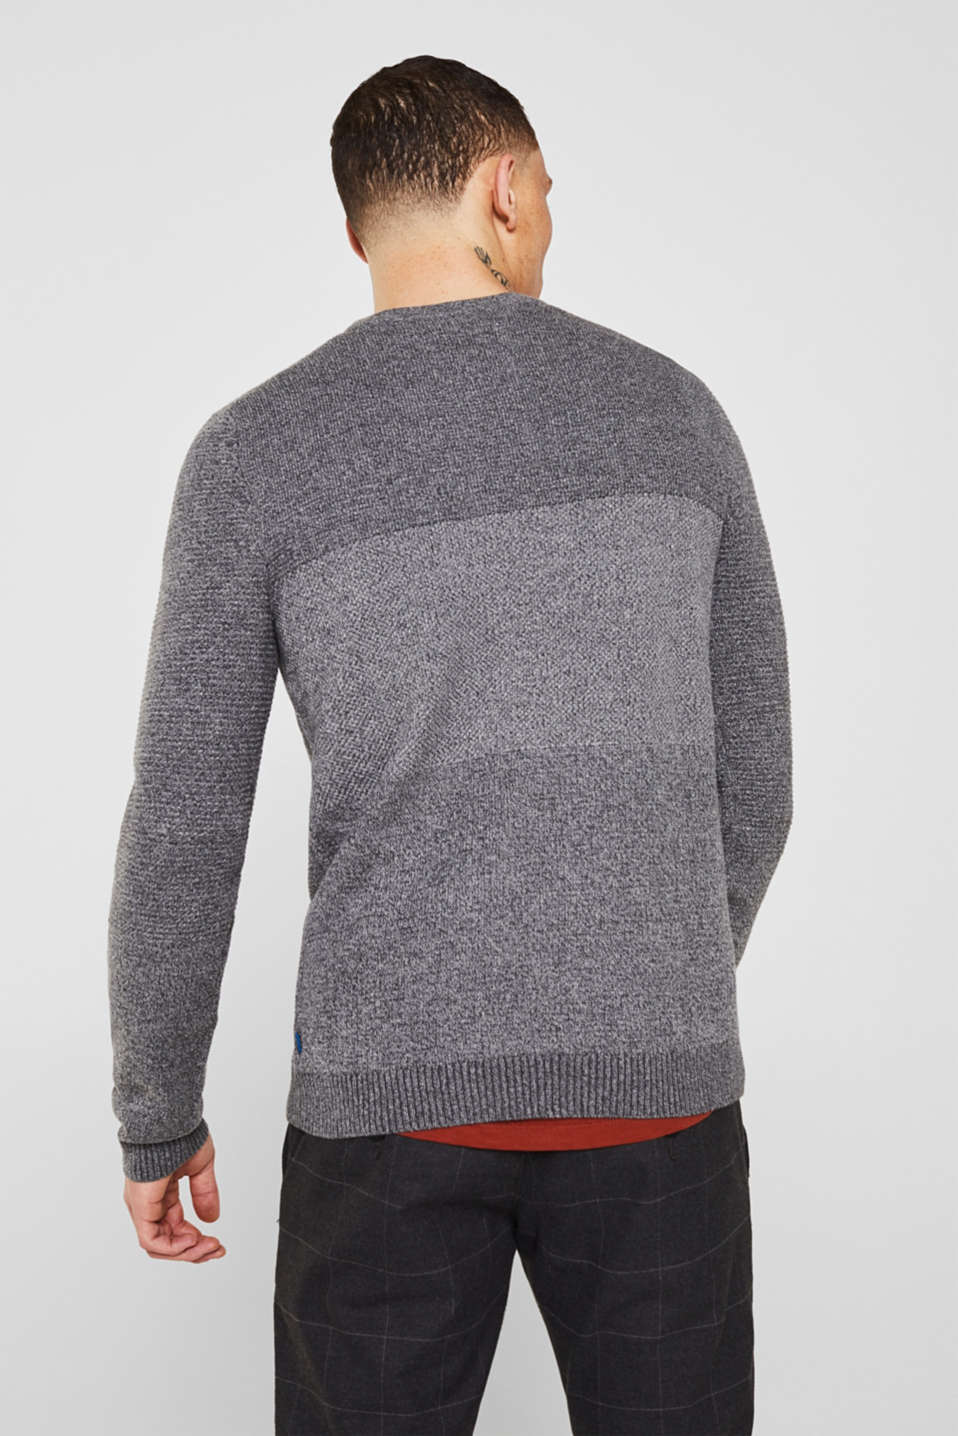 Jumper with textured stripes, 100% cotton, MEDIUM GREY, detail image number 2